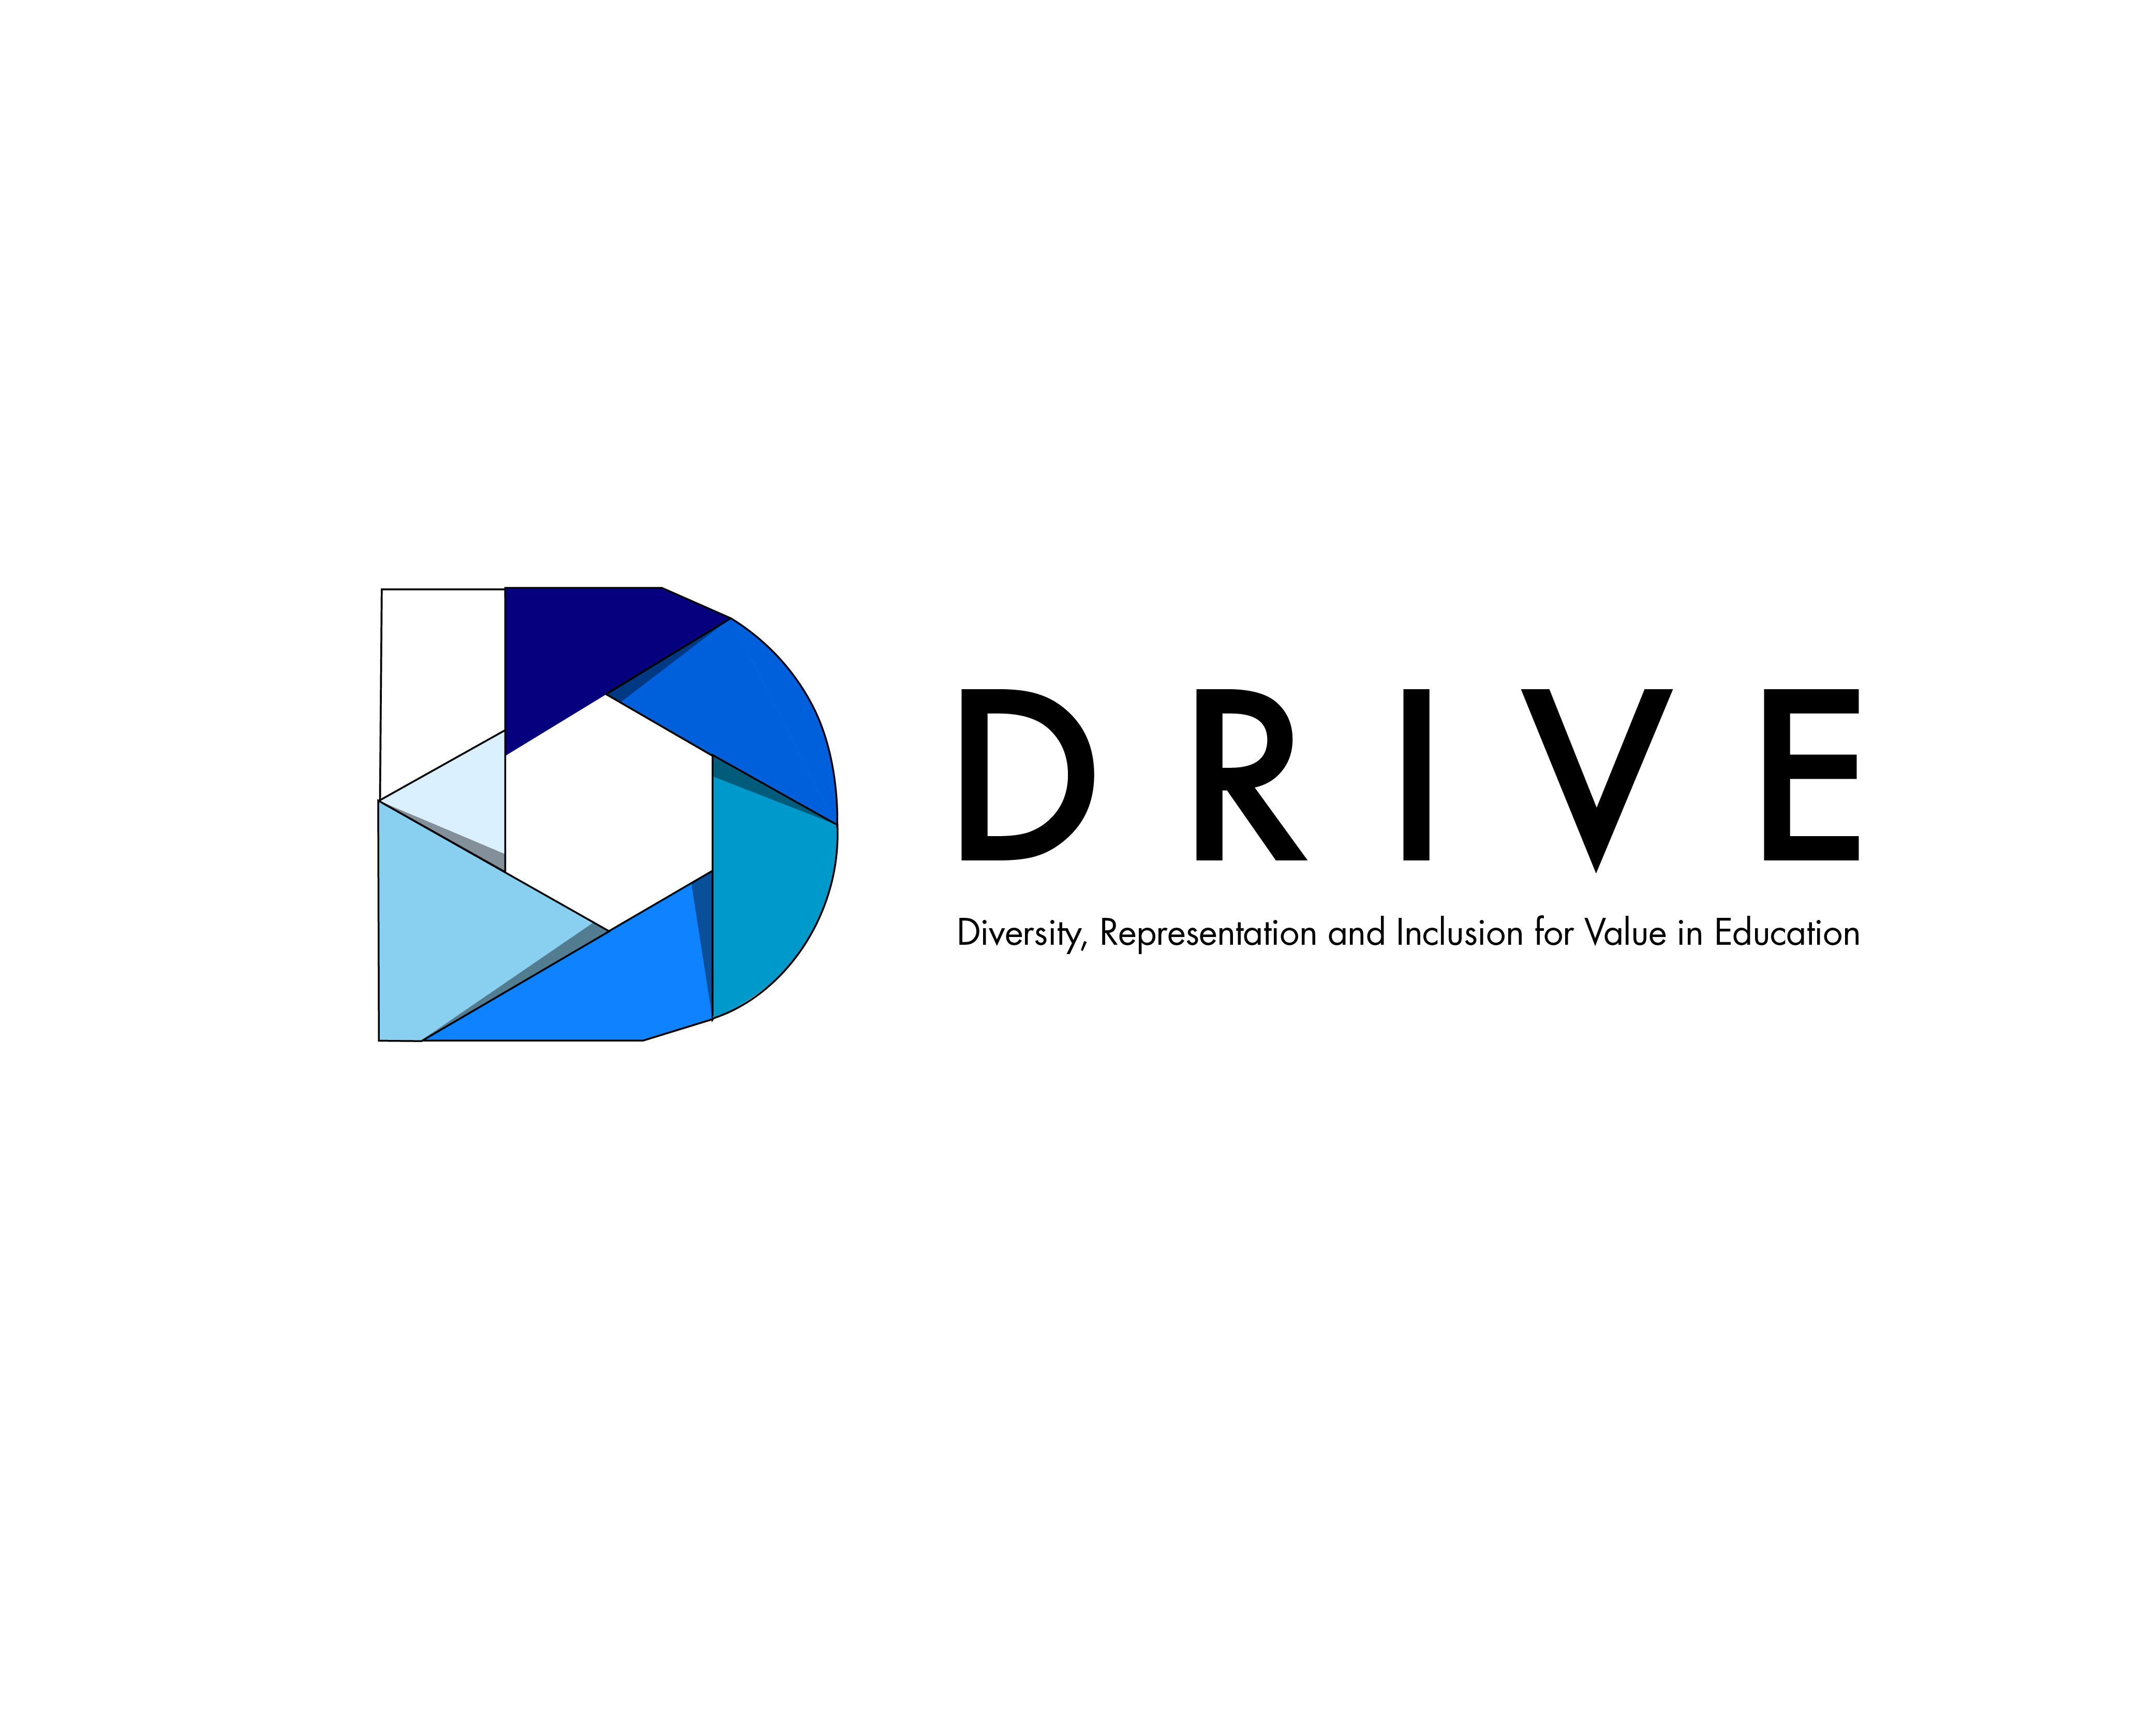 DRIVE: Diversity, Representation, Inclusion and Value in Education - color logo, predominantly blue